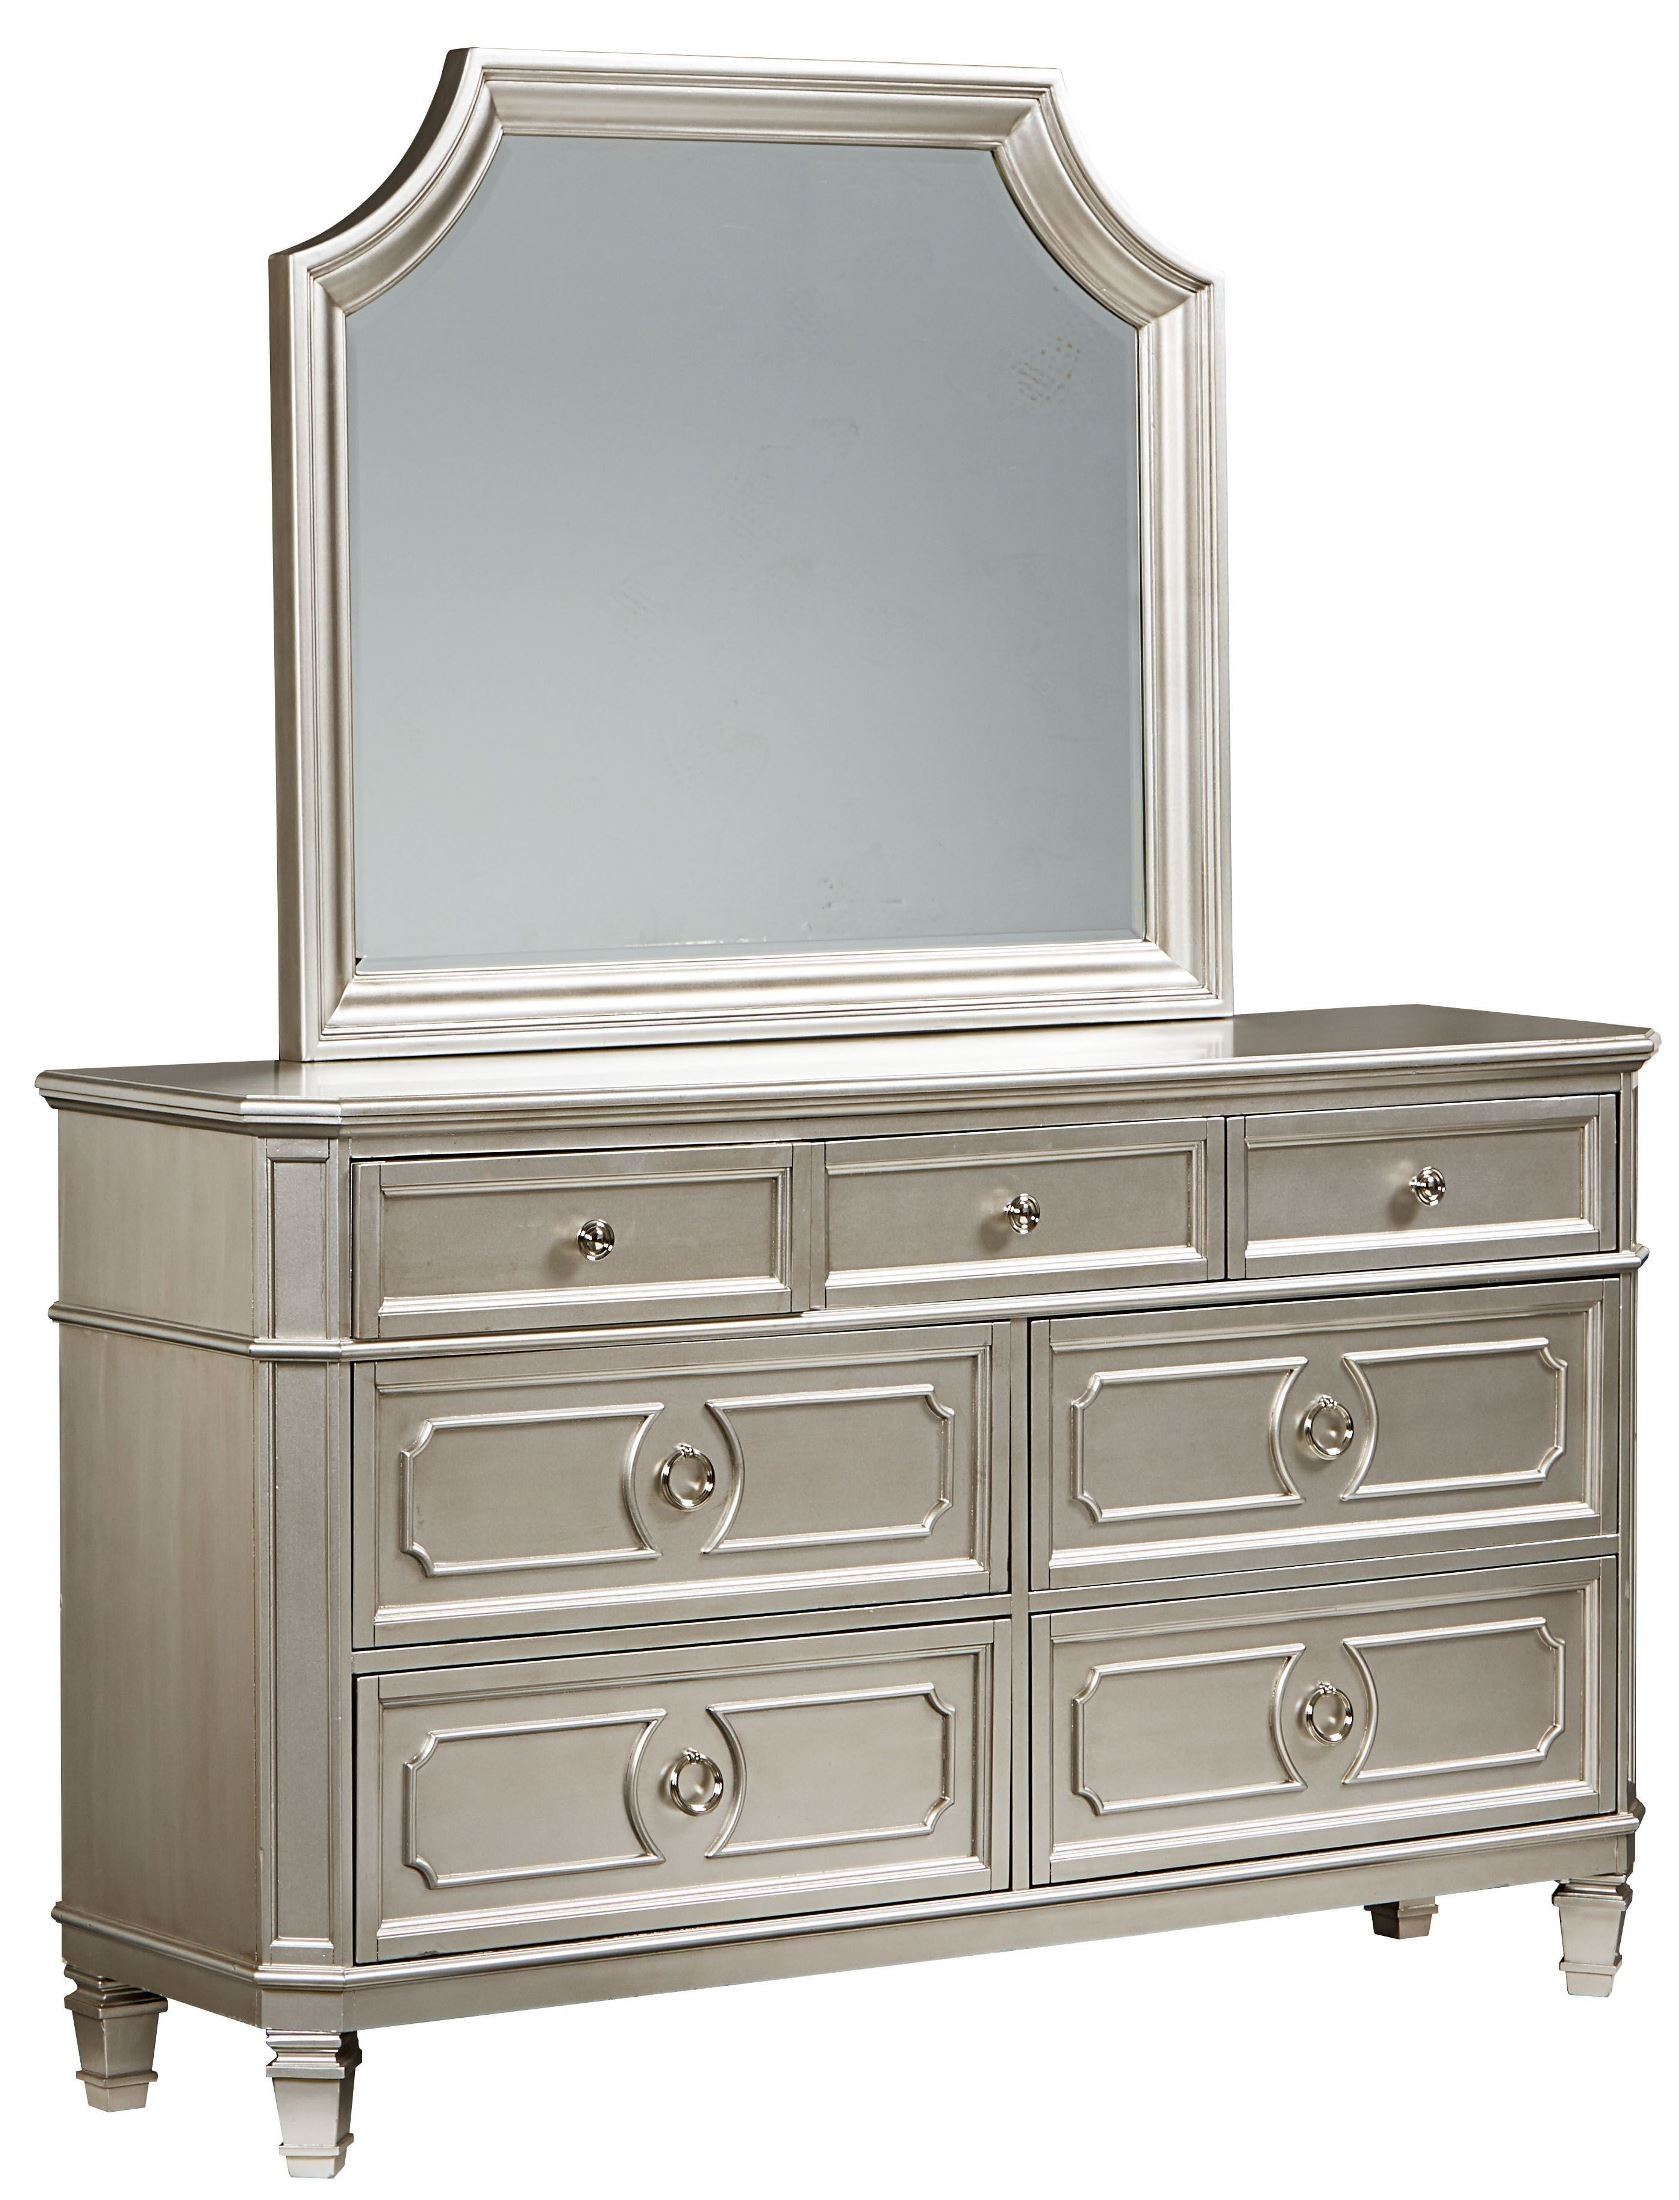 Windsor silver panel bedroom set 873 01 12 04 standard for Silver bedroom furniture